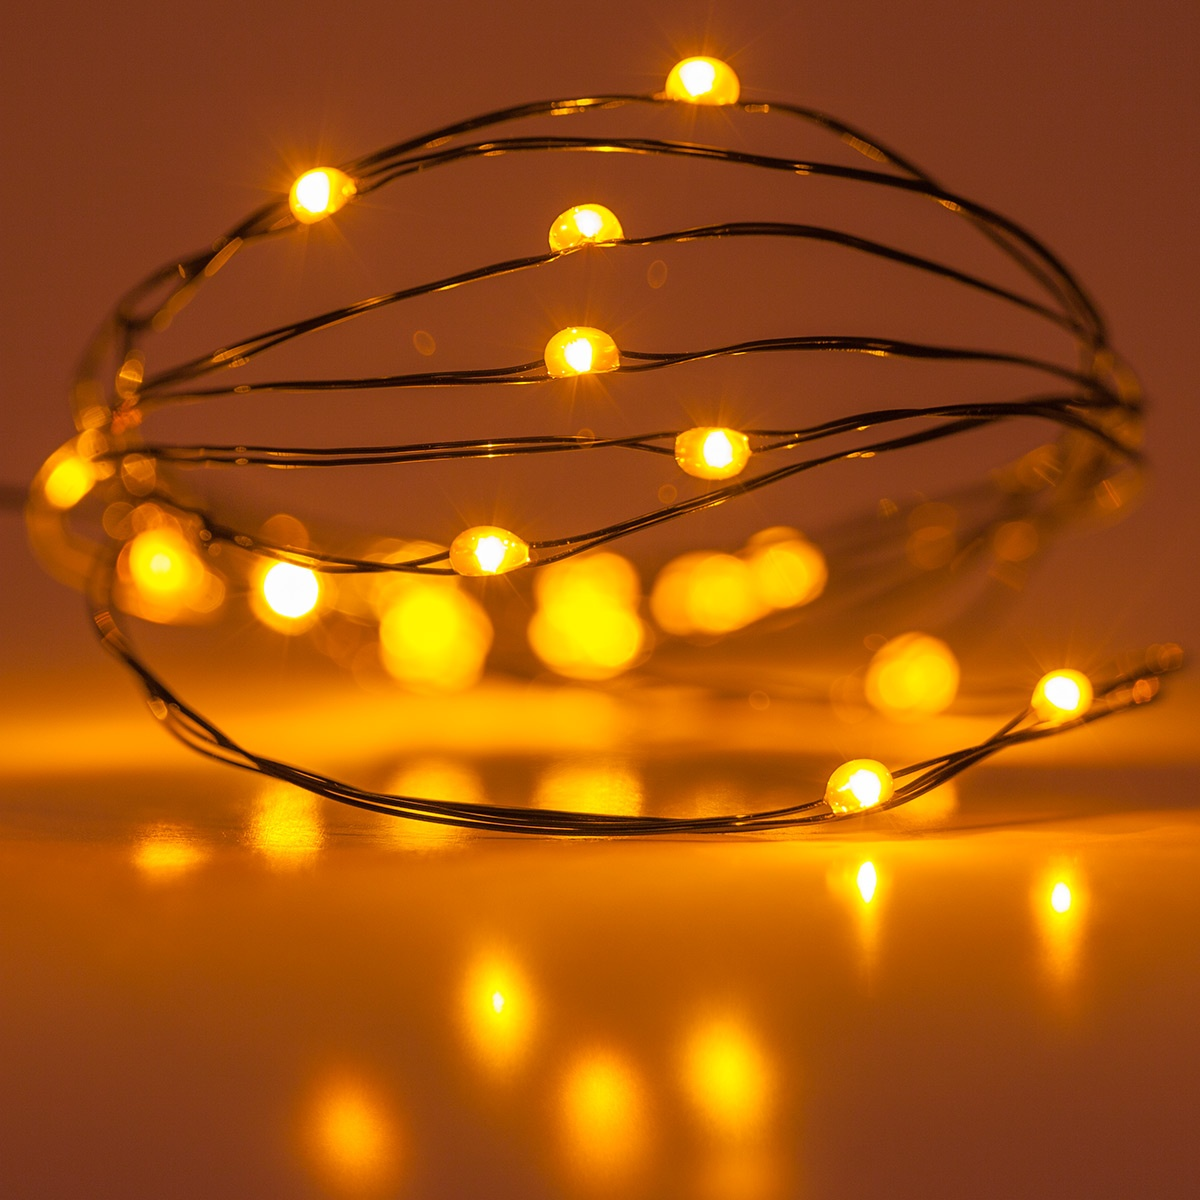 Battery Operated Lights - 18 Amber Battery Operated LED Fairy Lights, Green Wire